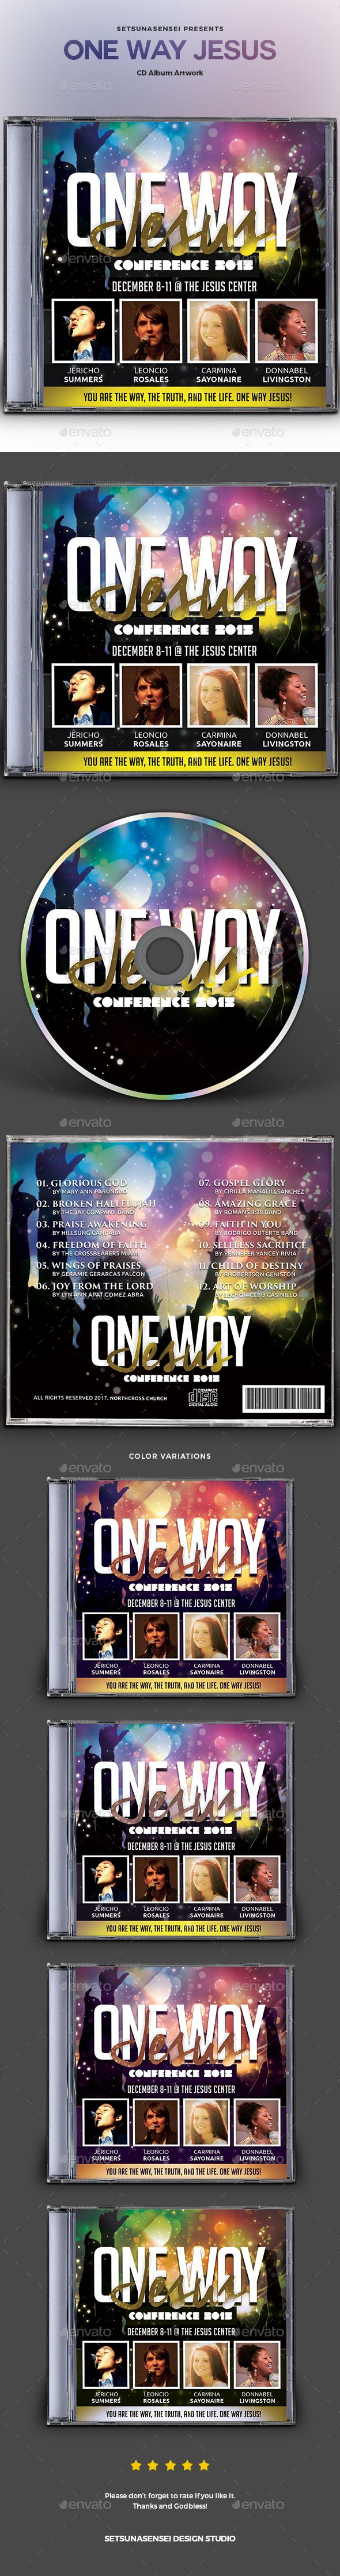 One Way Jesus CD Album Artwork - #CD & DVD Artwork Print Templates